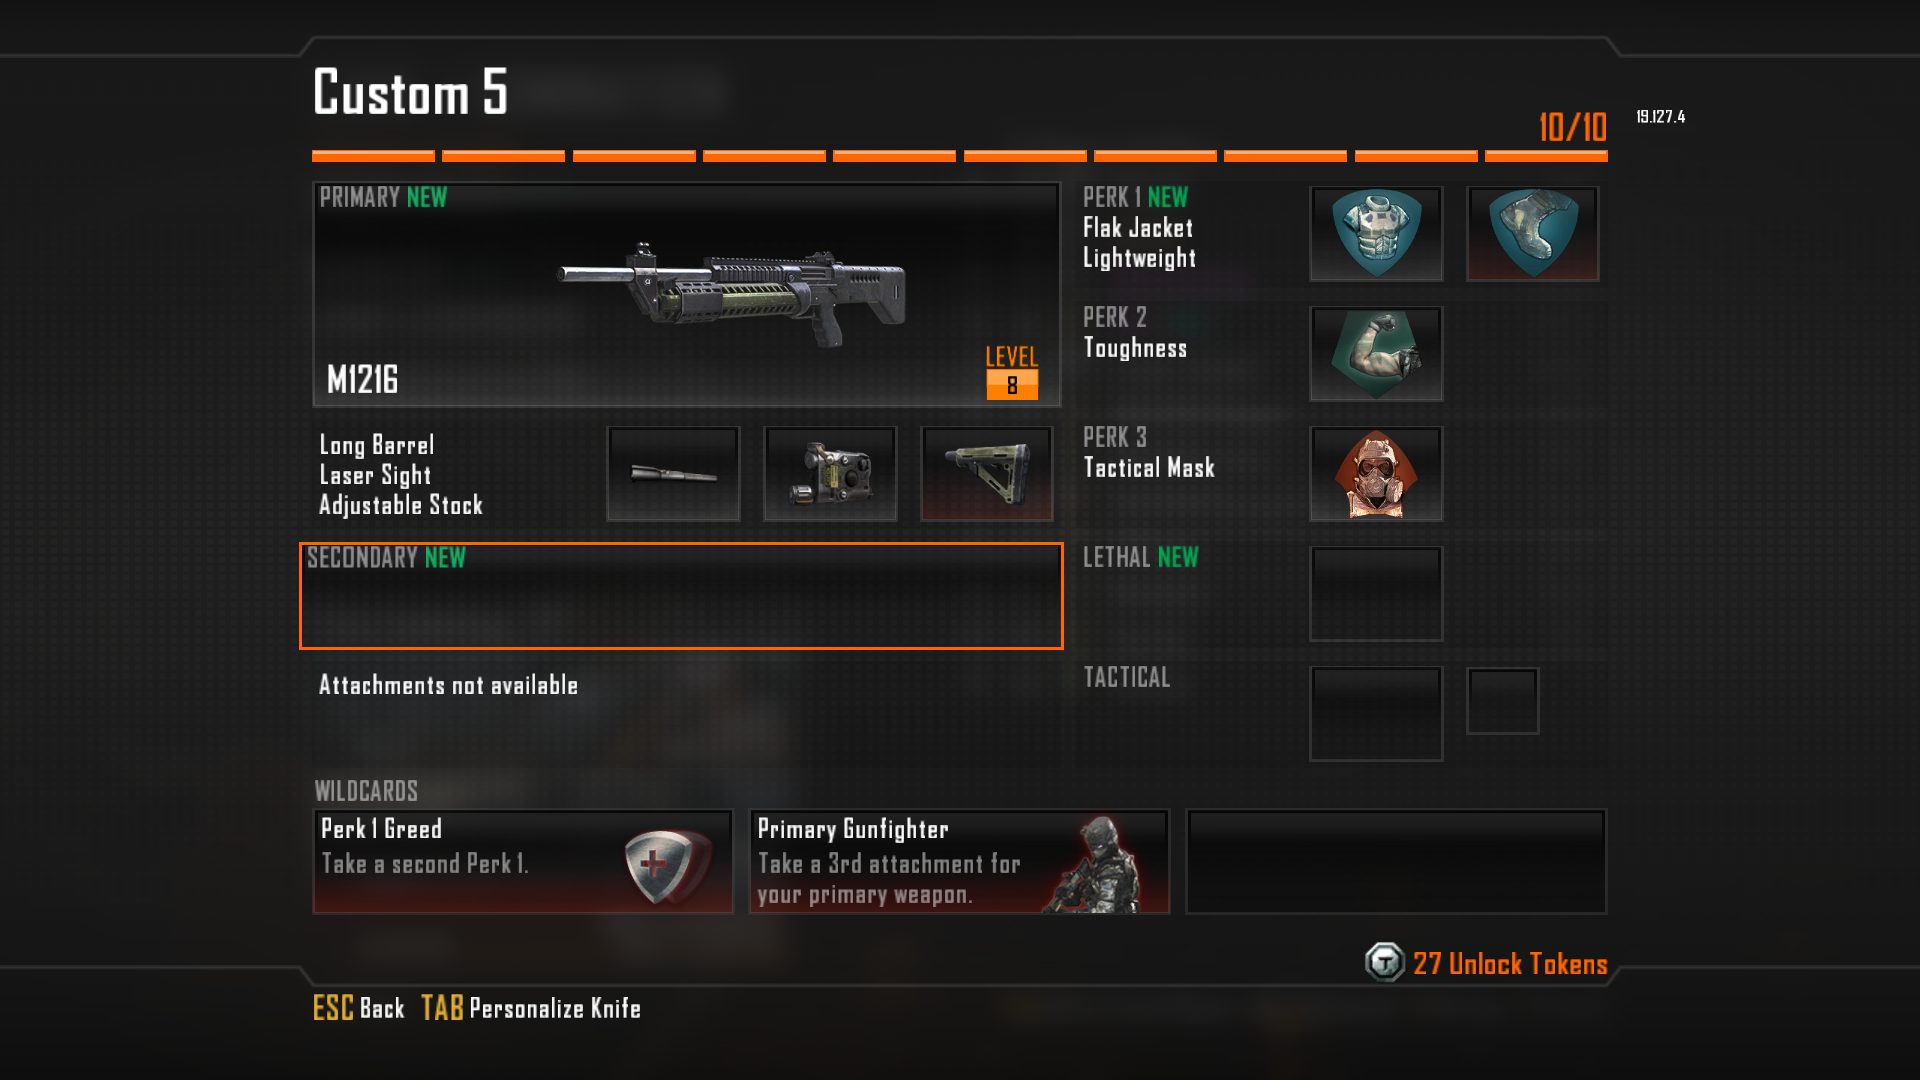 Call of Duty Black Ops 2 Weapon Guide: M1216 (Best Class Setup and ... M1216